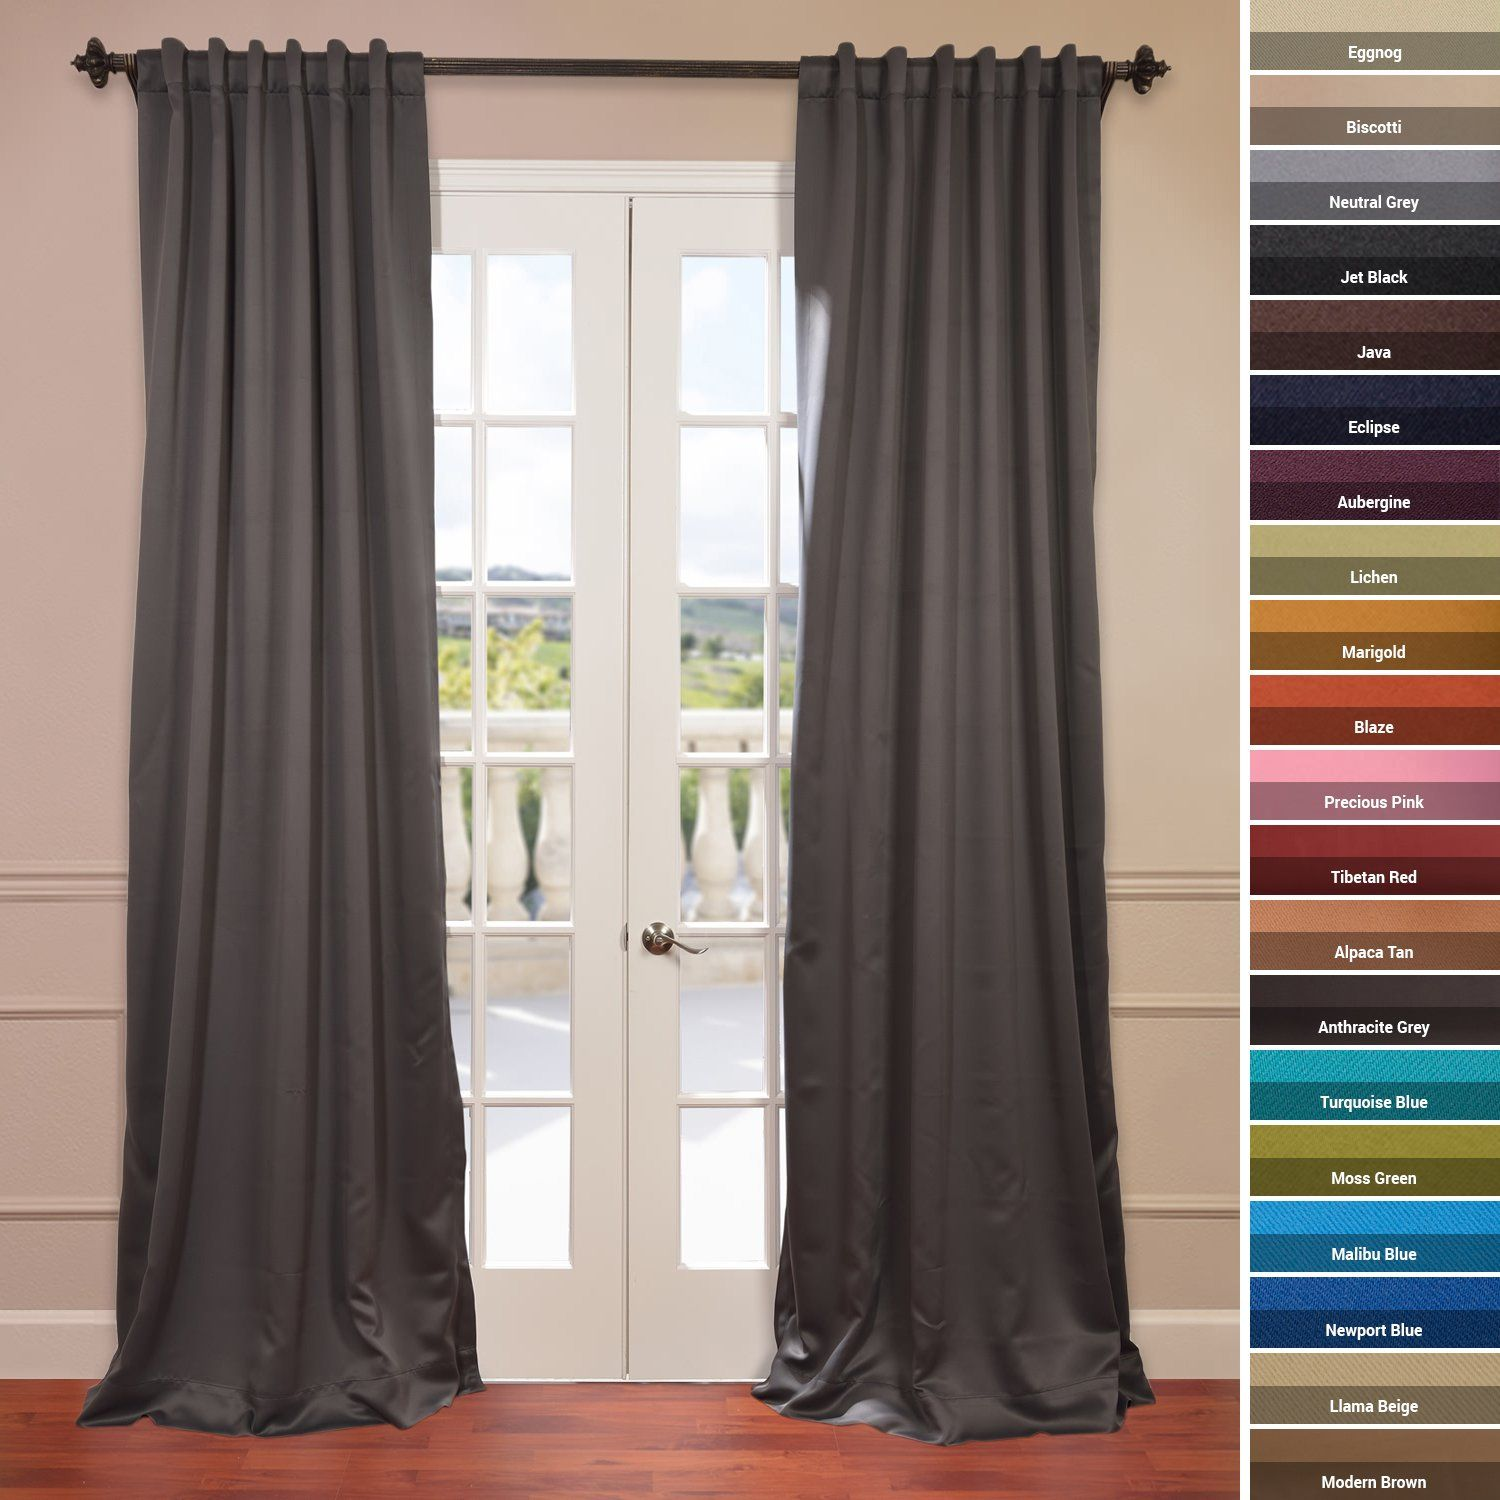 Amazon Blackout Curtain Neutral Grey Grey Window